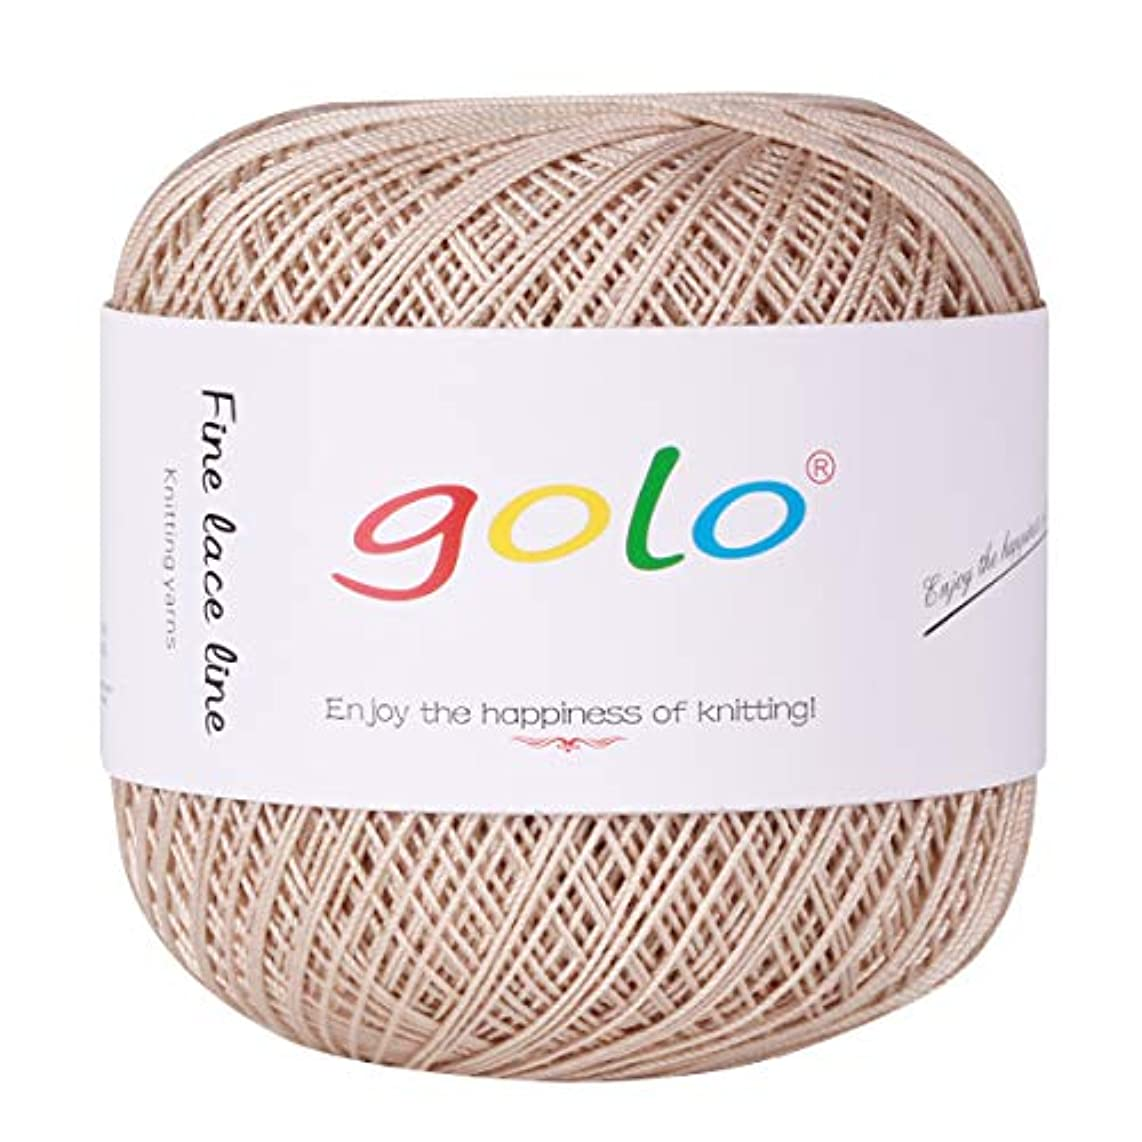 Crochet Thread Yarns for Begingers Size6-100% Contton Yarn for Knitting Crochet DIY Hardanger Cross Sitch Crochet Thread Balls Rainbow Turquoise 39 Colors Avilable (Coffee Color)